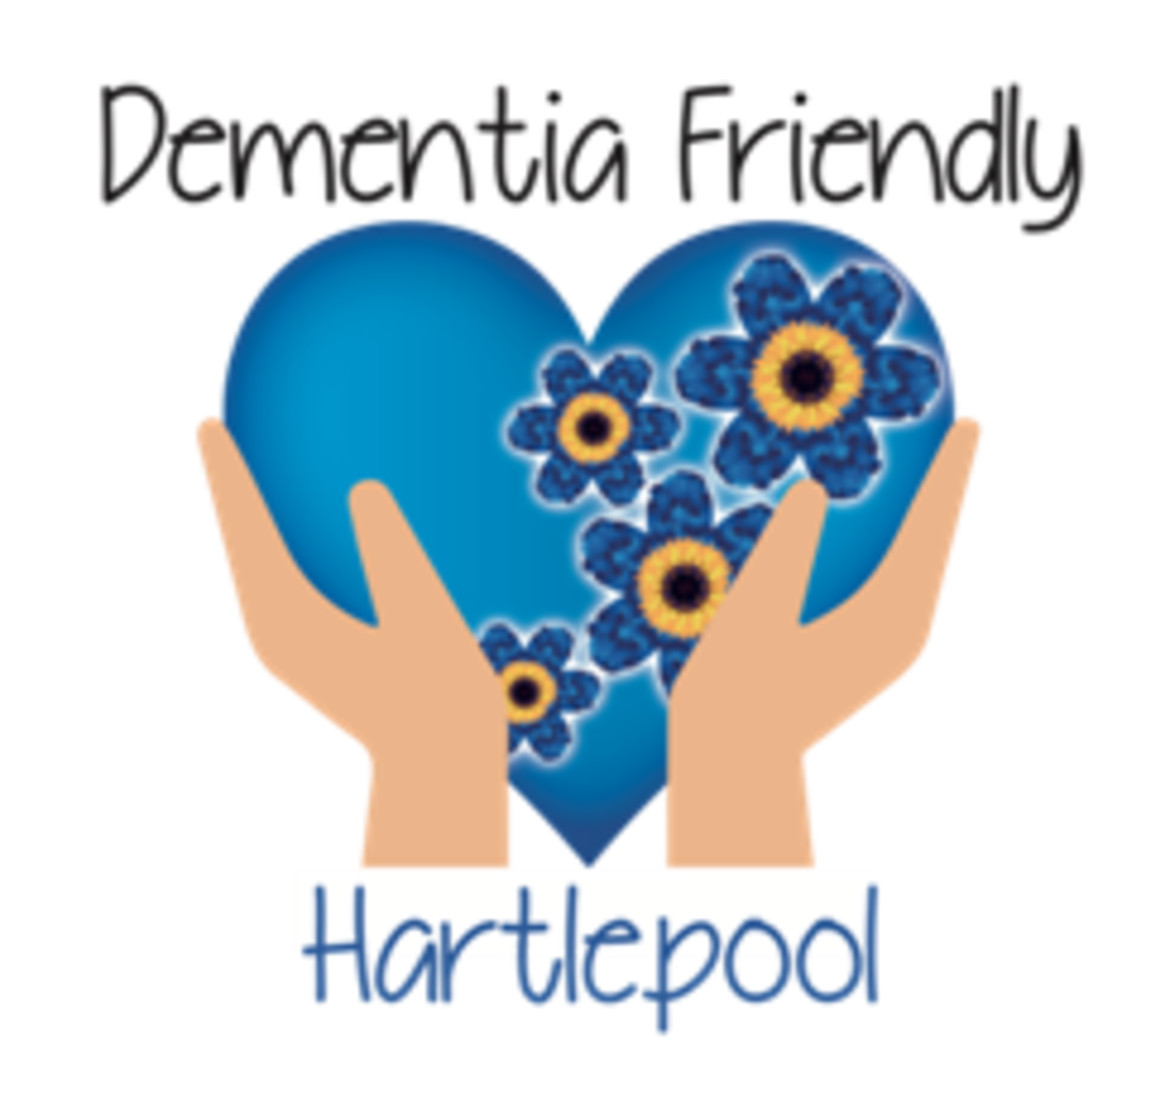 Afternoon Tea to raise funds for Dementia Friendly Hartlepool